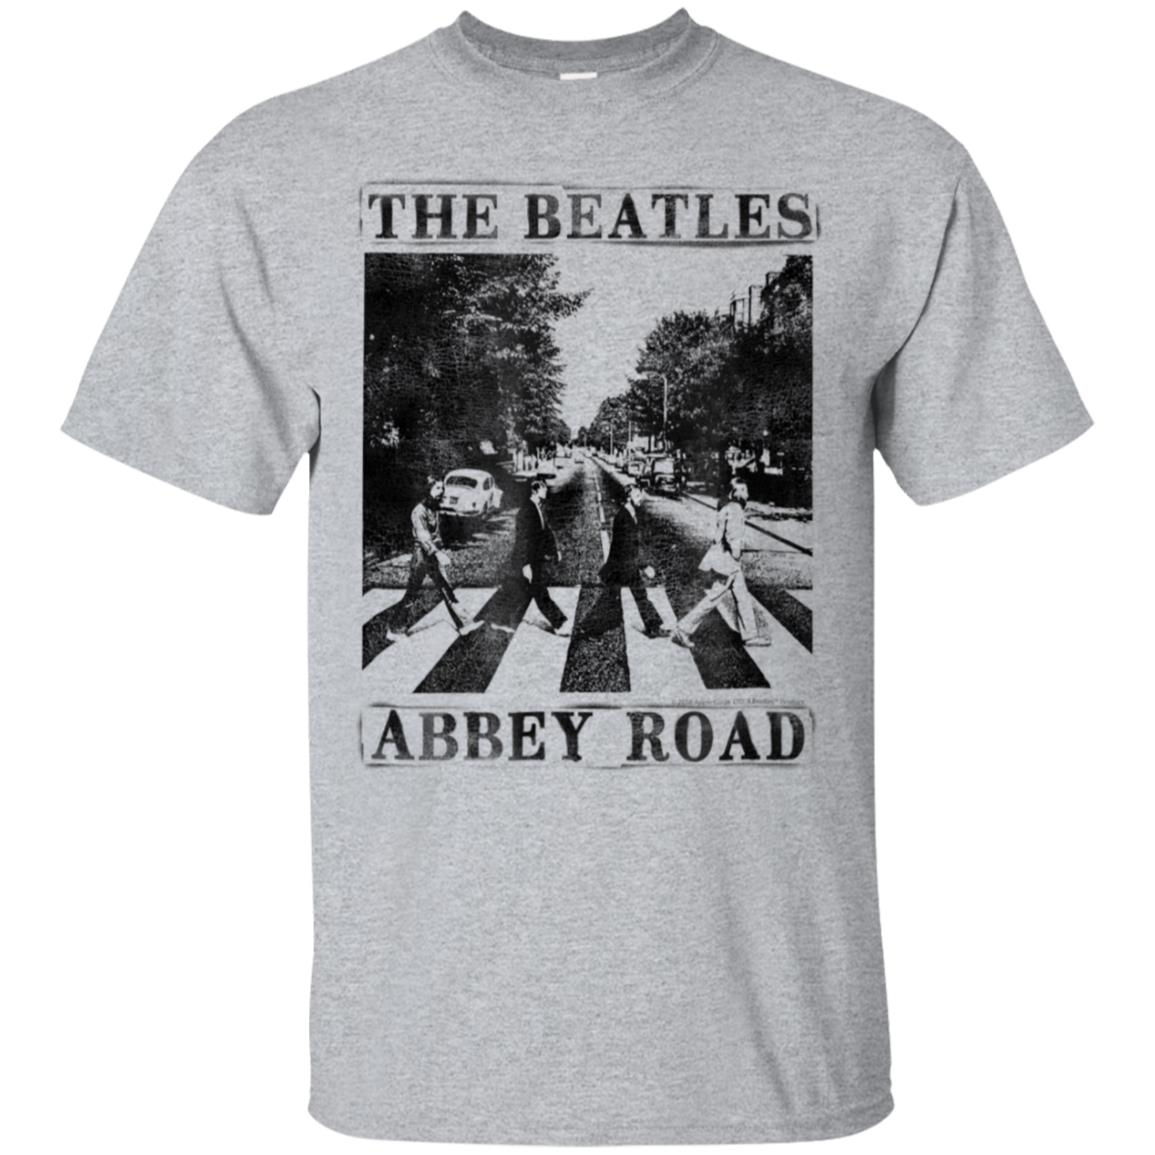 The Beatles Abbey Road T-shirt 99promocode